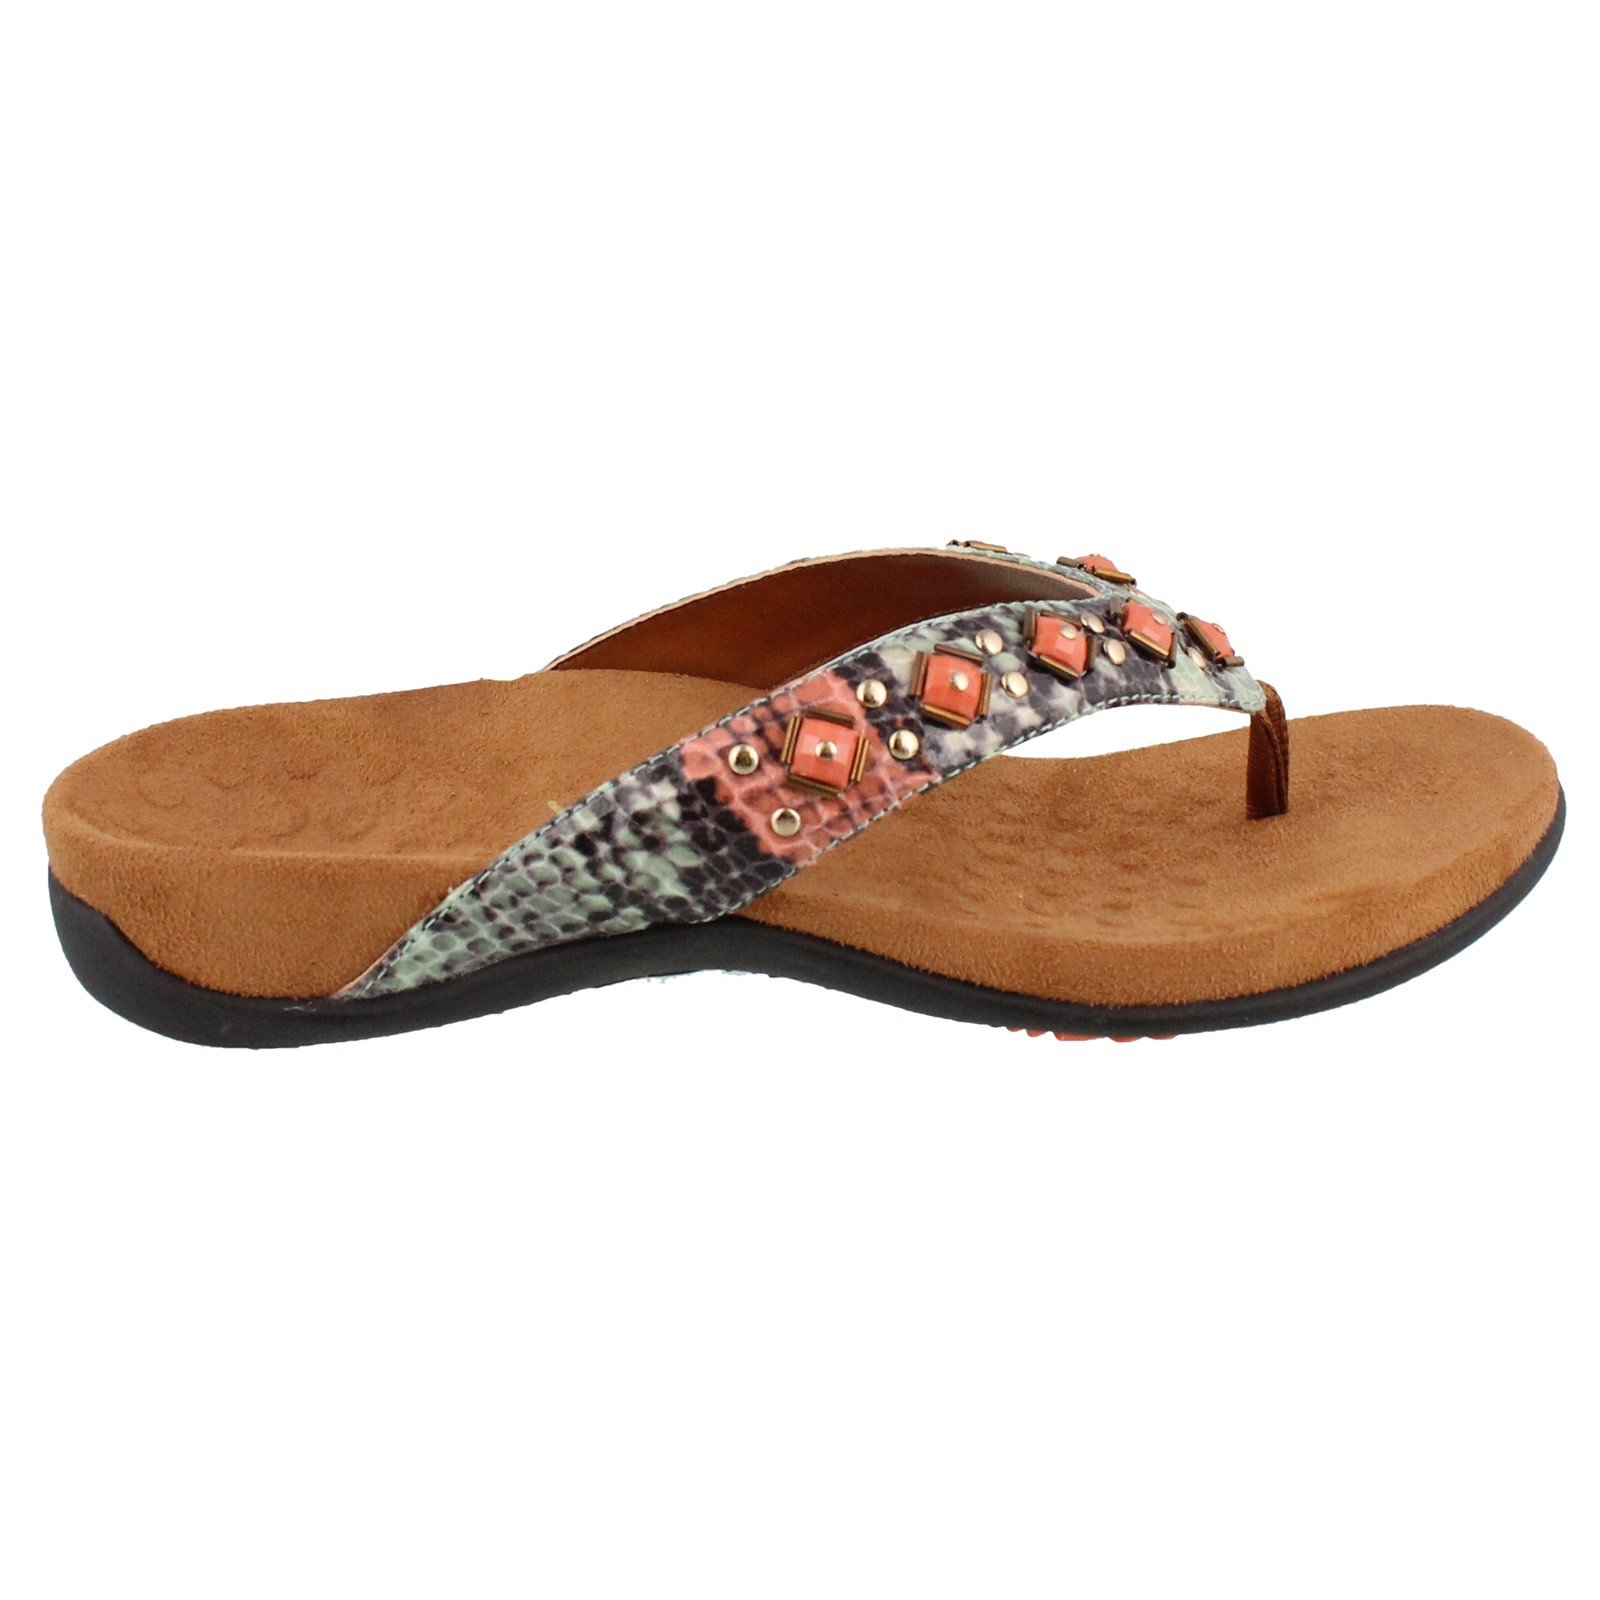 Women's Vionic, Floriana decorated Thong Sandals